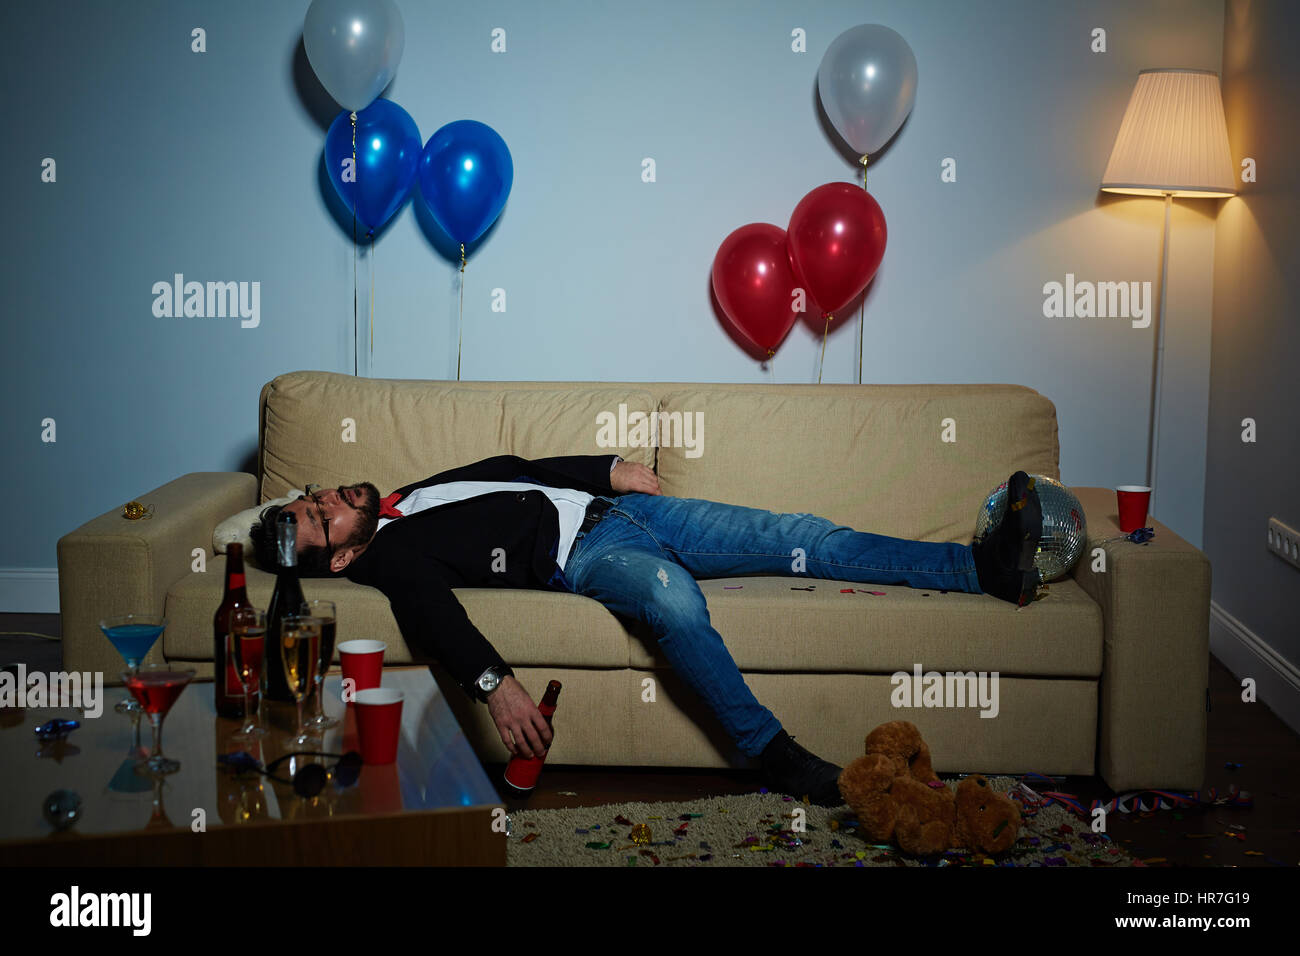 empty bottles after party stockfotos empty bottles after party bilder alamy. Black Bedroom Furniture Sets. Home Design Ideas